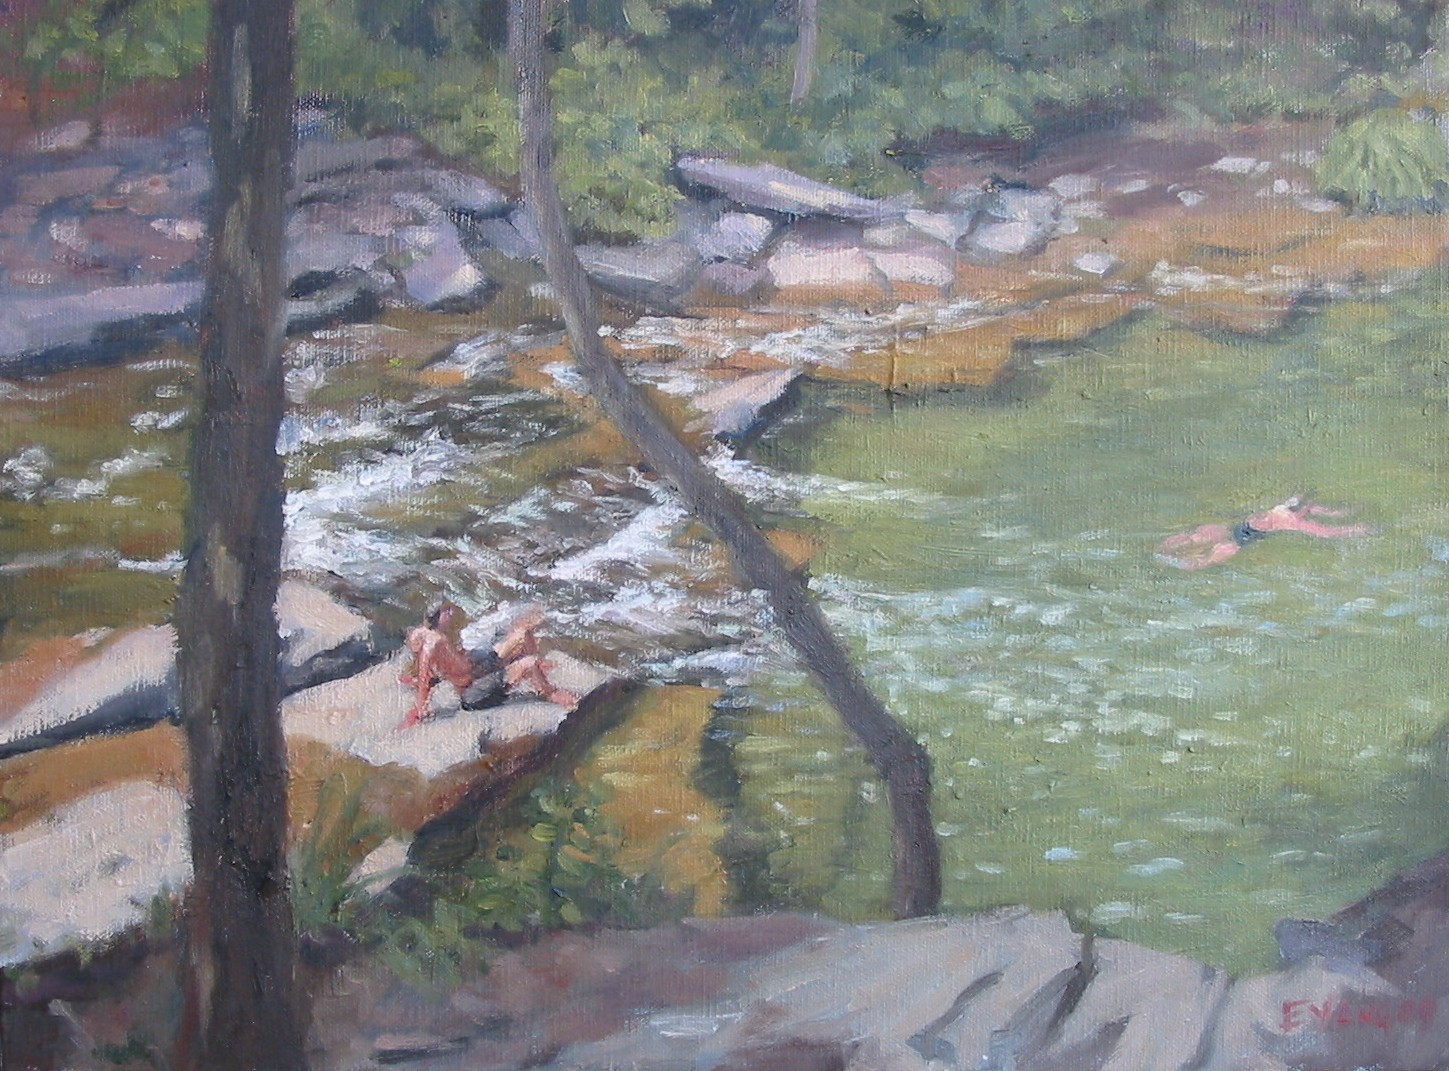 Swimming Hole, oil on canvas, 12 x 16 inches